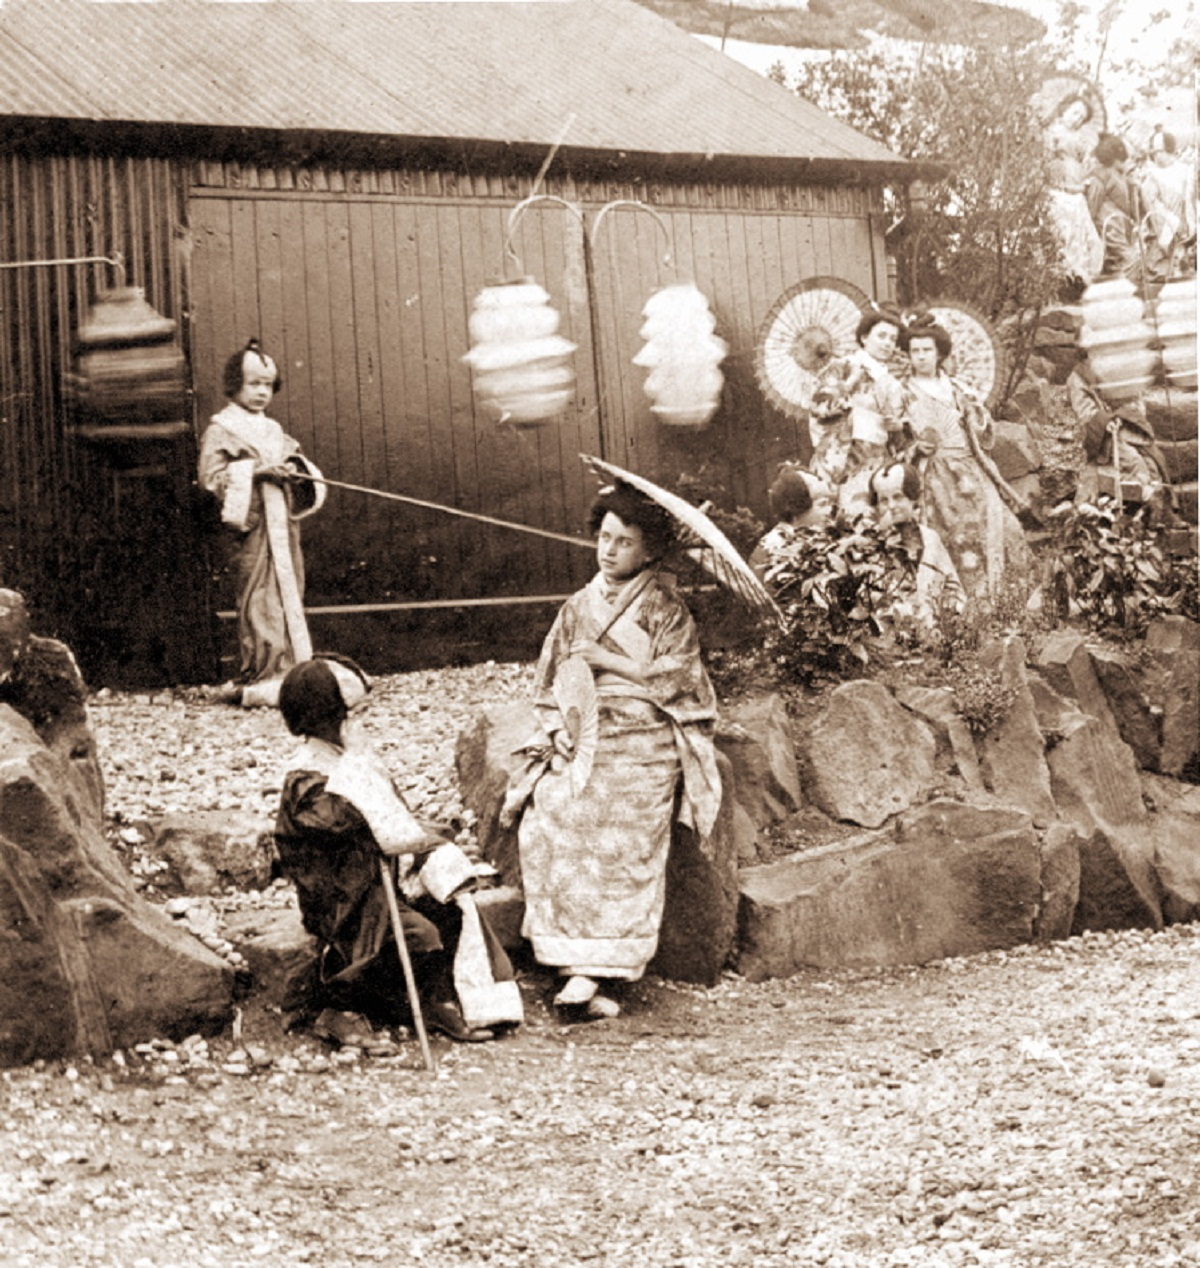 Otley's lost Japanese Gardens in their prime, around the start of the 20th Century. Picture courtesy of Otley Museum